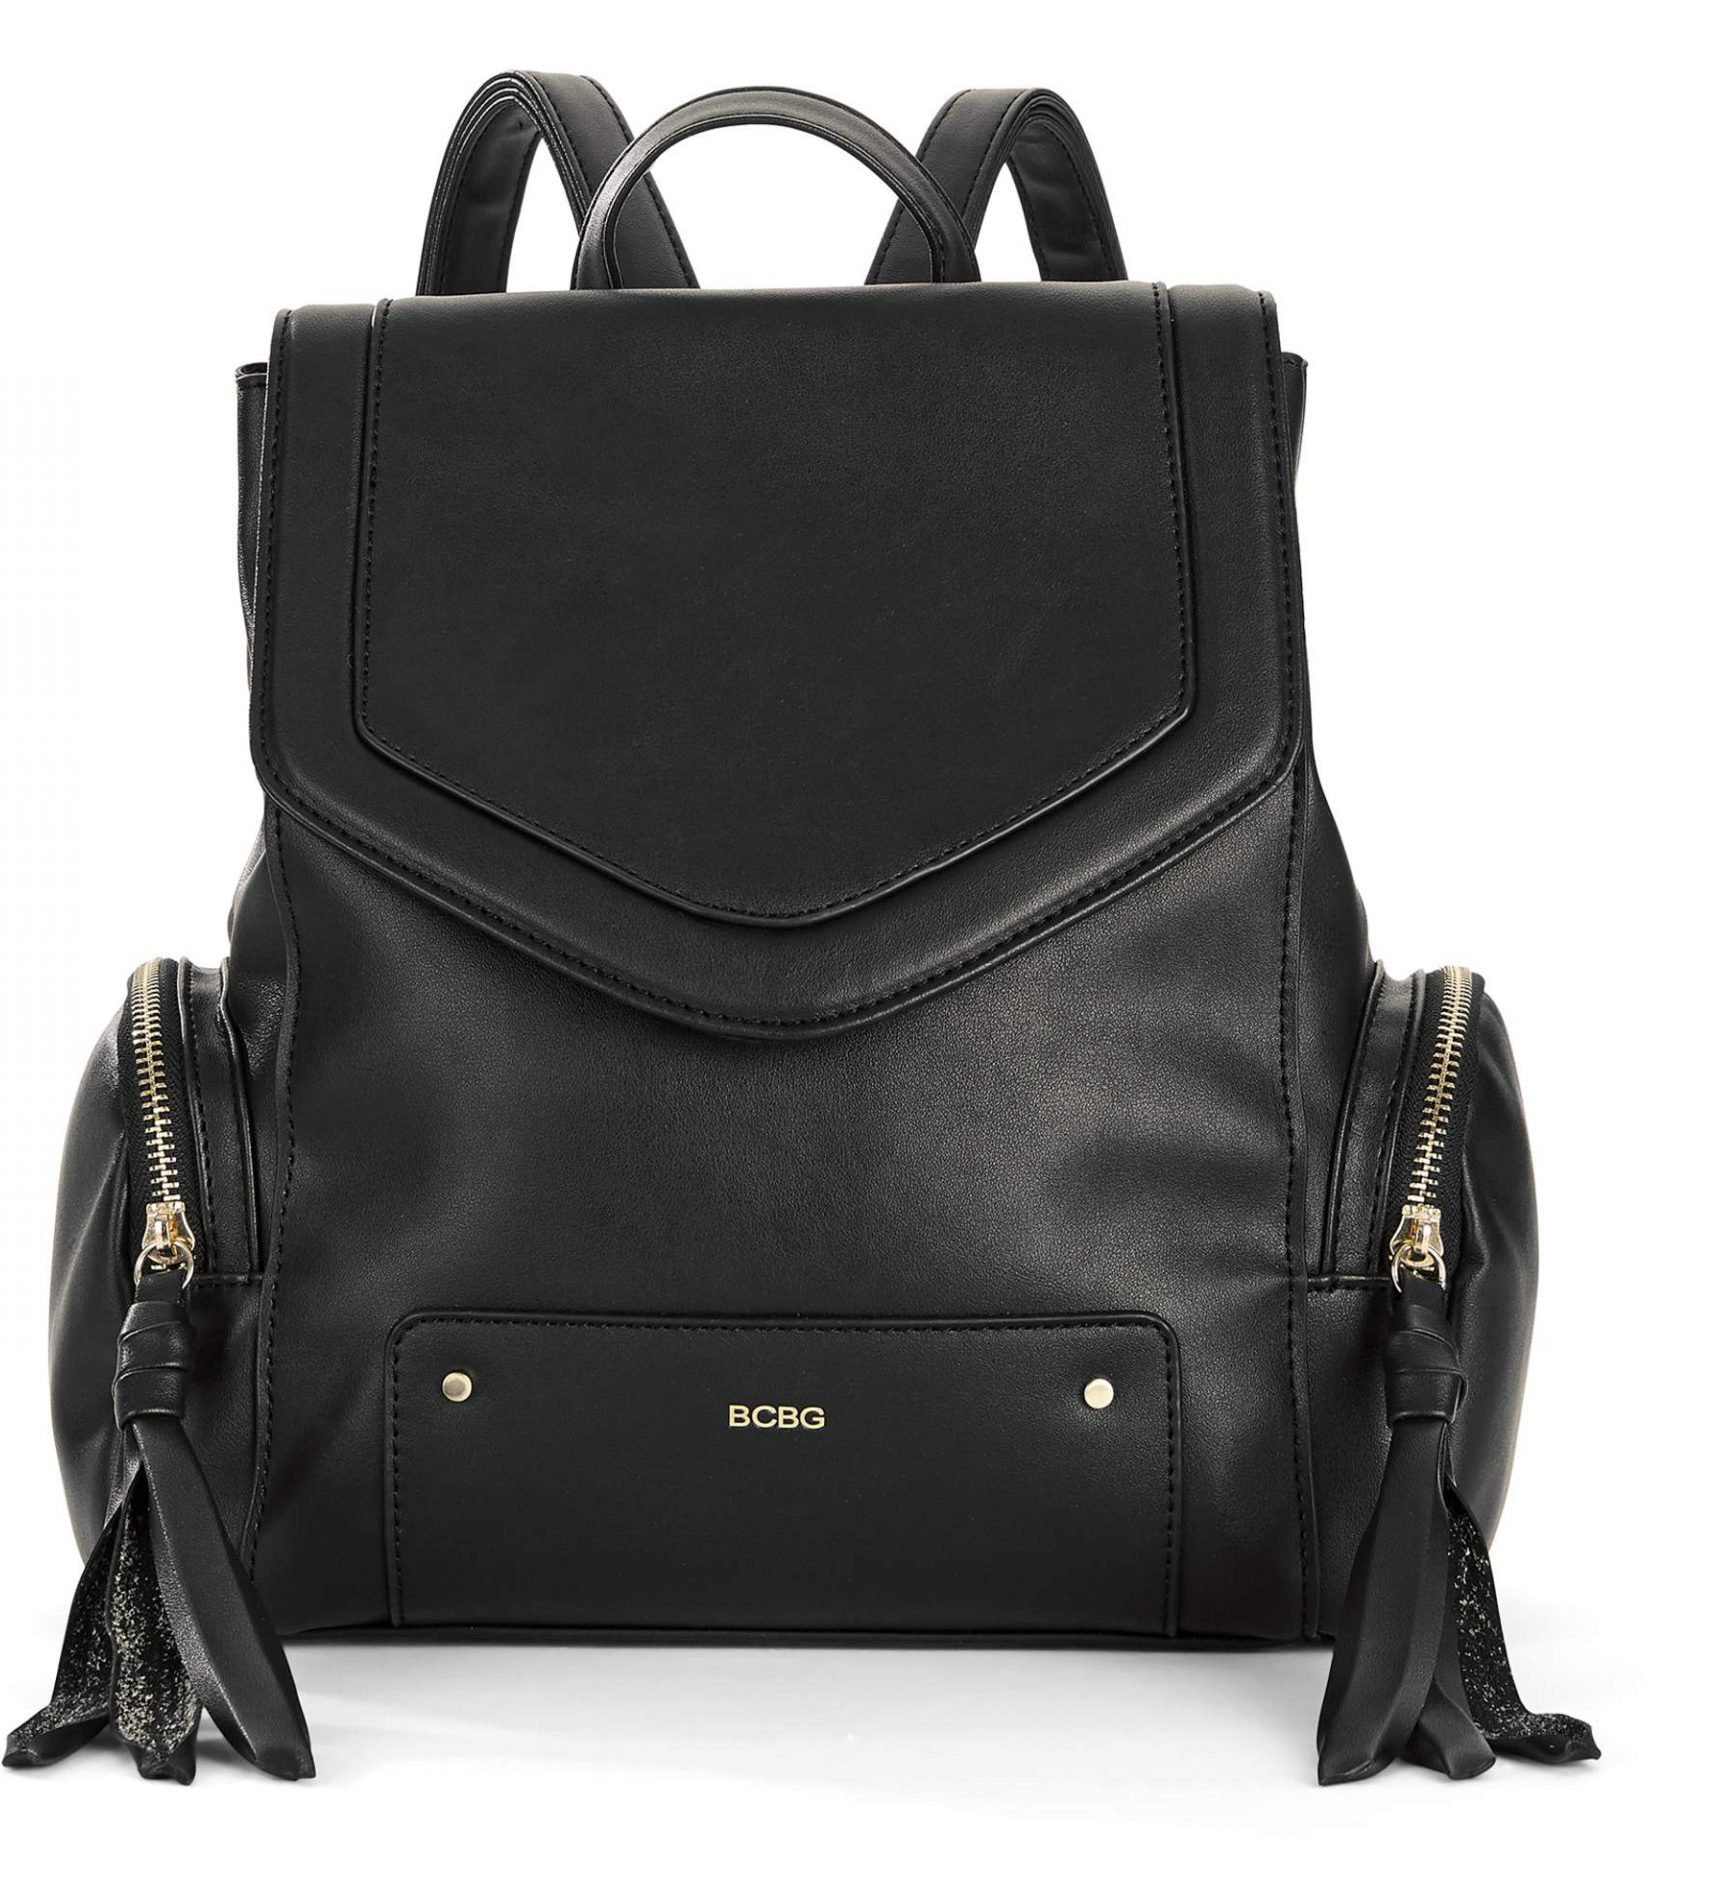 BCBG Small Emmy Backpack